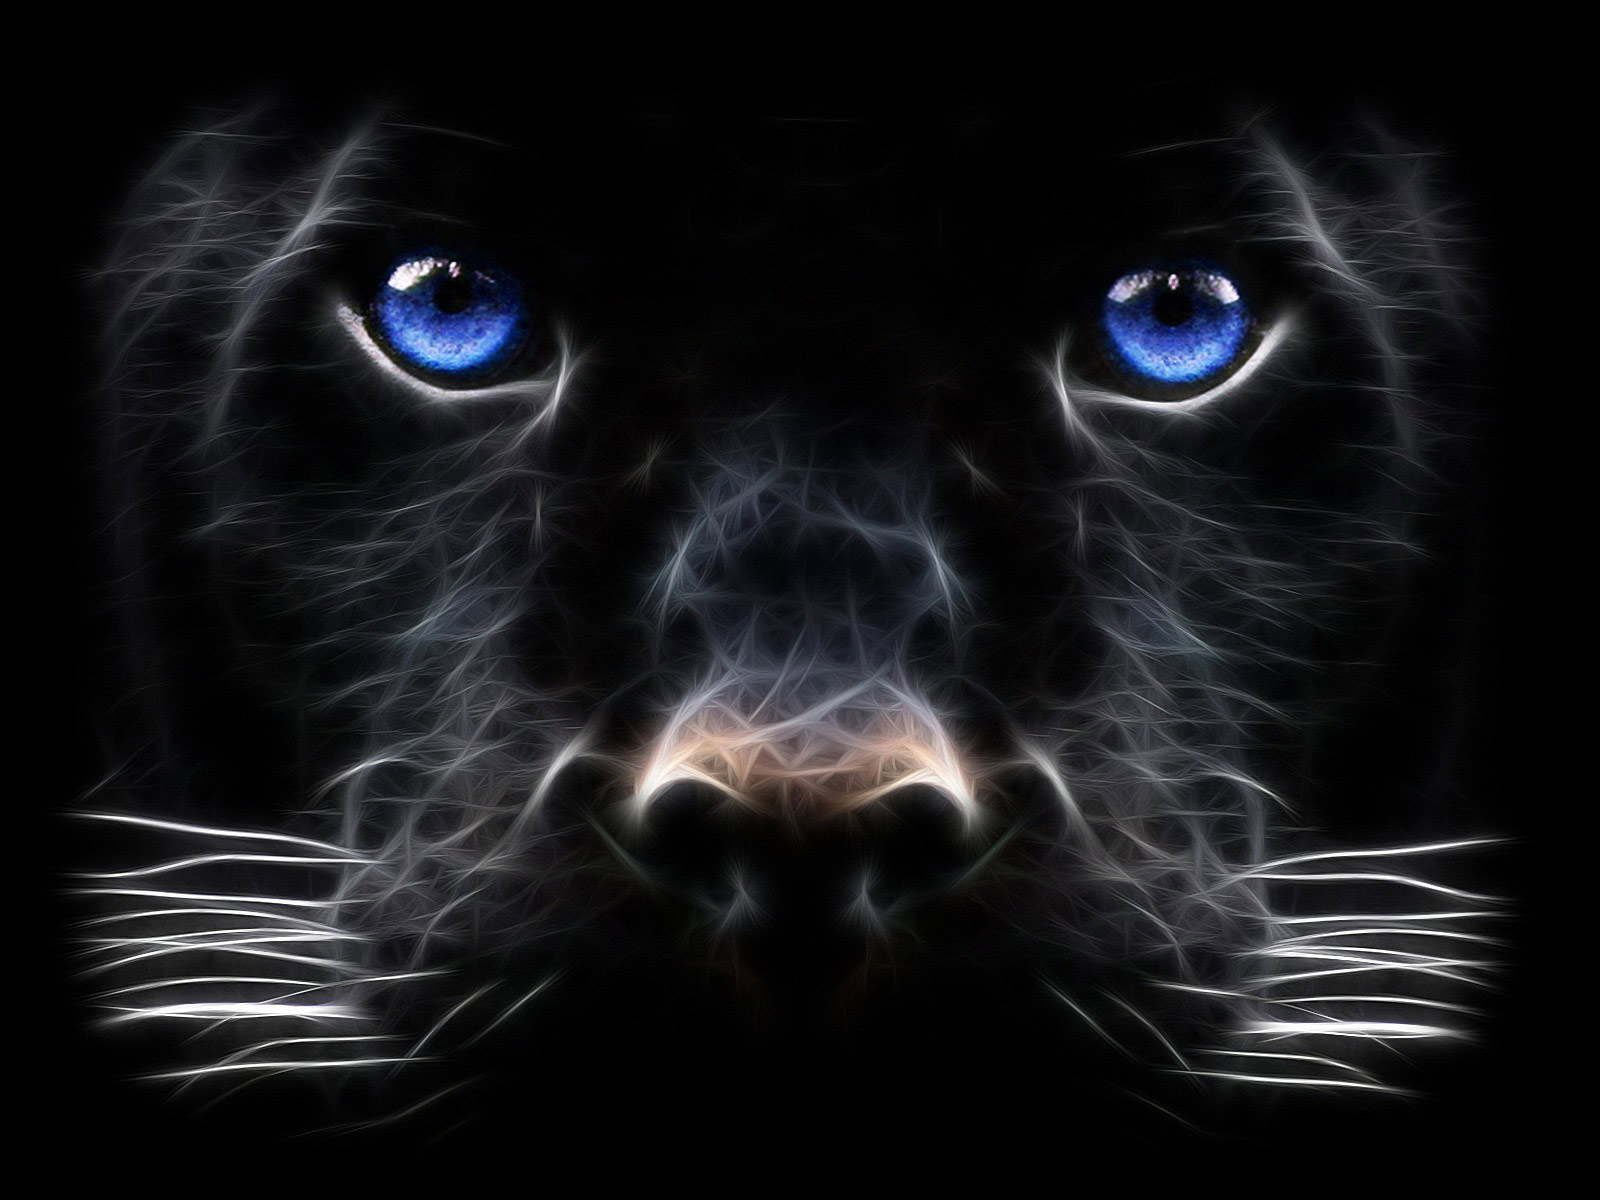 http://3.bp.blogspot.com/-Bi9_MvnyQsc/URi49e-KhLI/AAAAAAAAEFU/OwKHBvadFgg/s1600/Backgrounds_Windows_7_-_Black_Panther_Big_cat.jpg